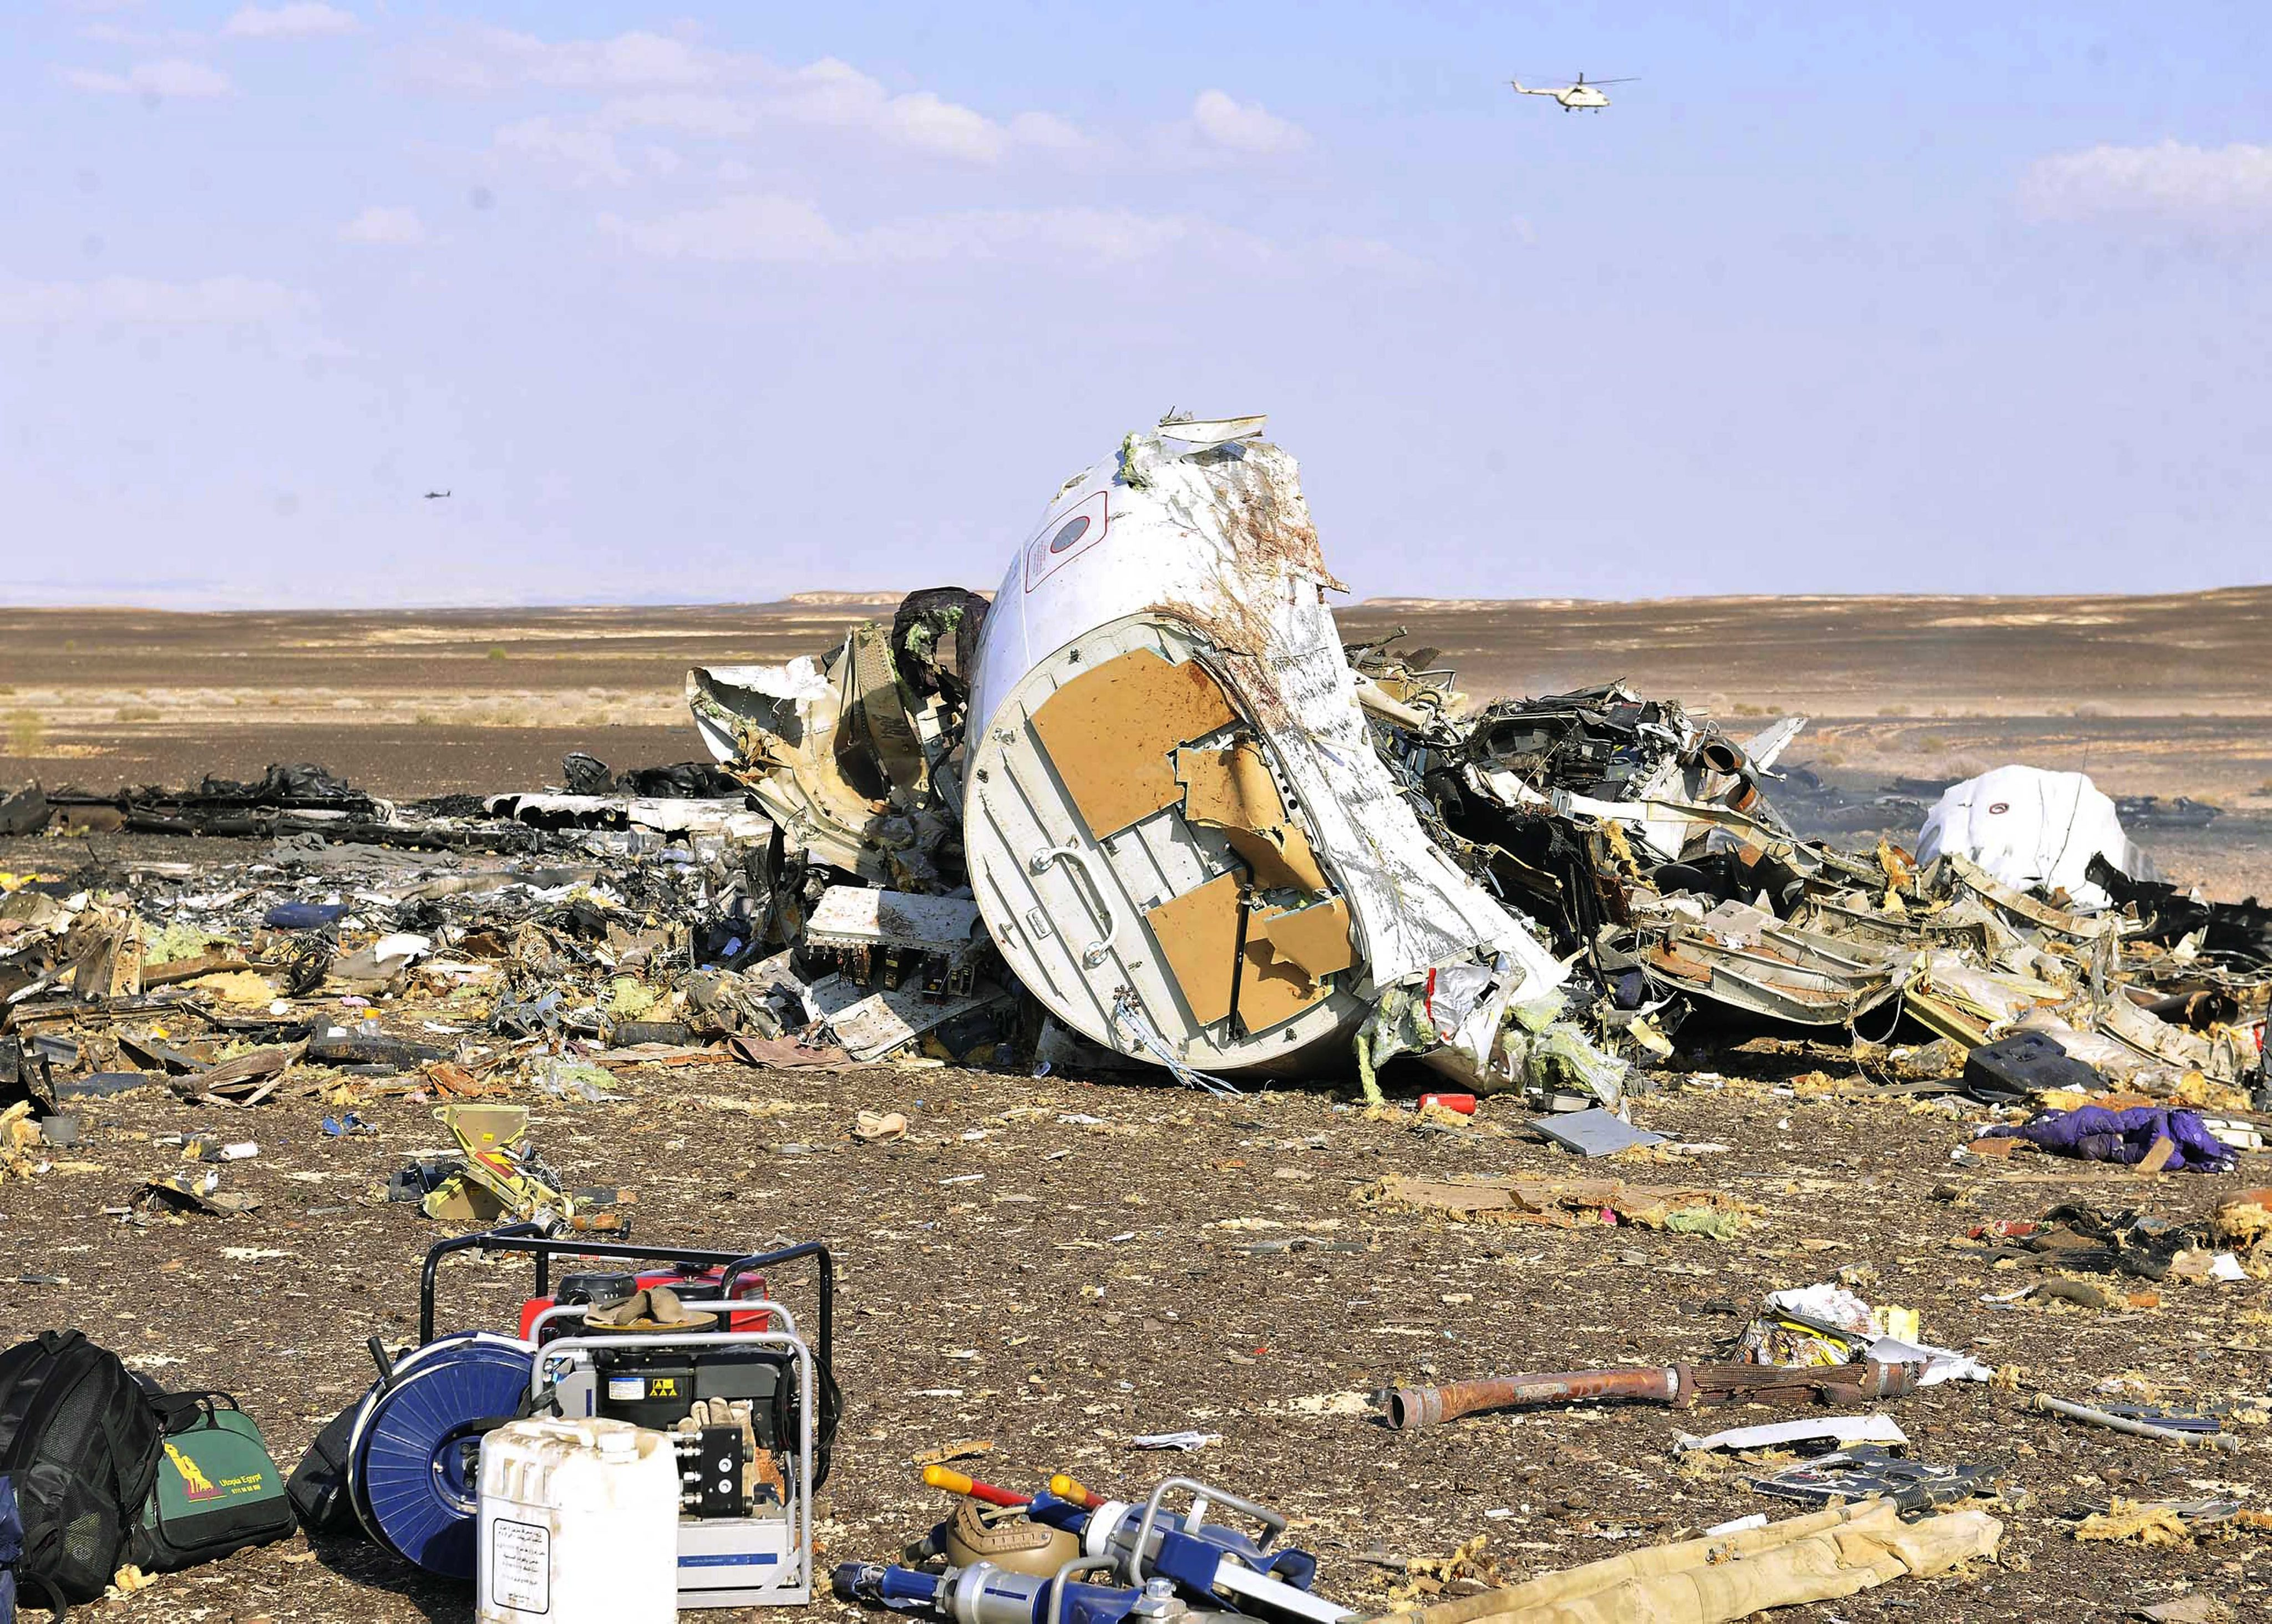 SIN03. Sinai (Egypt), .- Debris from crashed Russian jet lies strewn across the sand at the site of the crash, Sinai, Egypt, 31 October 2015. According to reports the Egyptian Government has dispatched more than 45 ambulances to the crash site of the Kogalymavia Metrojet Russian passenger jet, which disappeared from raider after requesting an emergency landing early 31 October, crashing in the mountainous al-Hasanah area of central Sinai. The black box has been recovered at the site. (Egipto) EFE/EPA/STR EGYPT OUT Authorities fear all on board crashed Russian jet dead